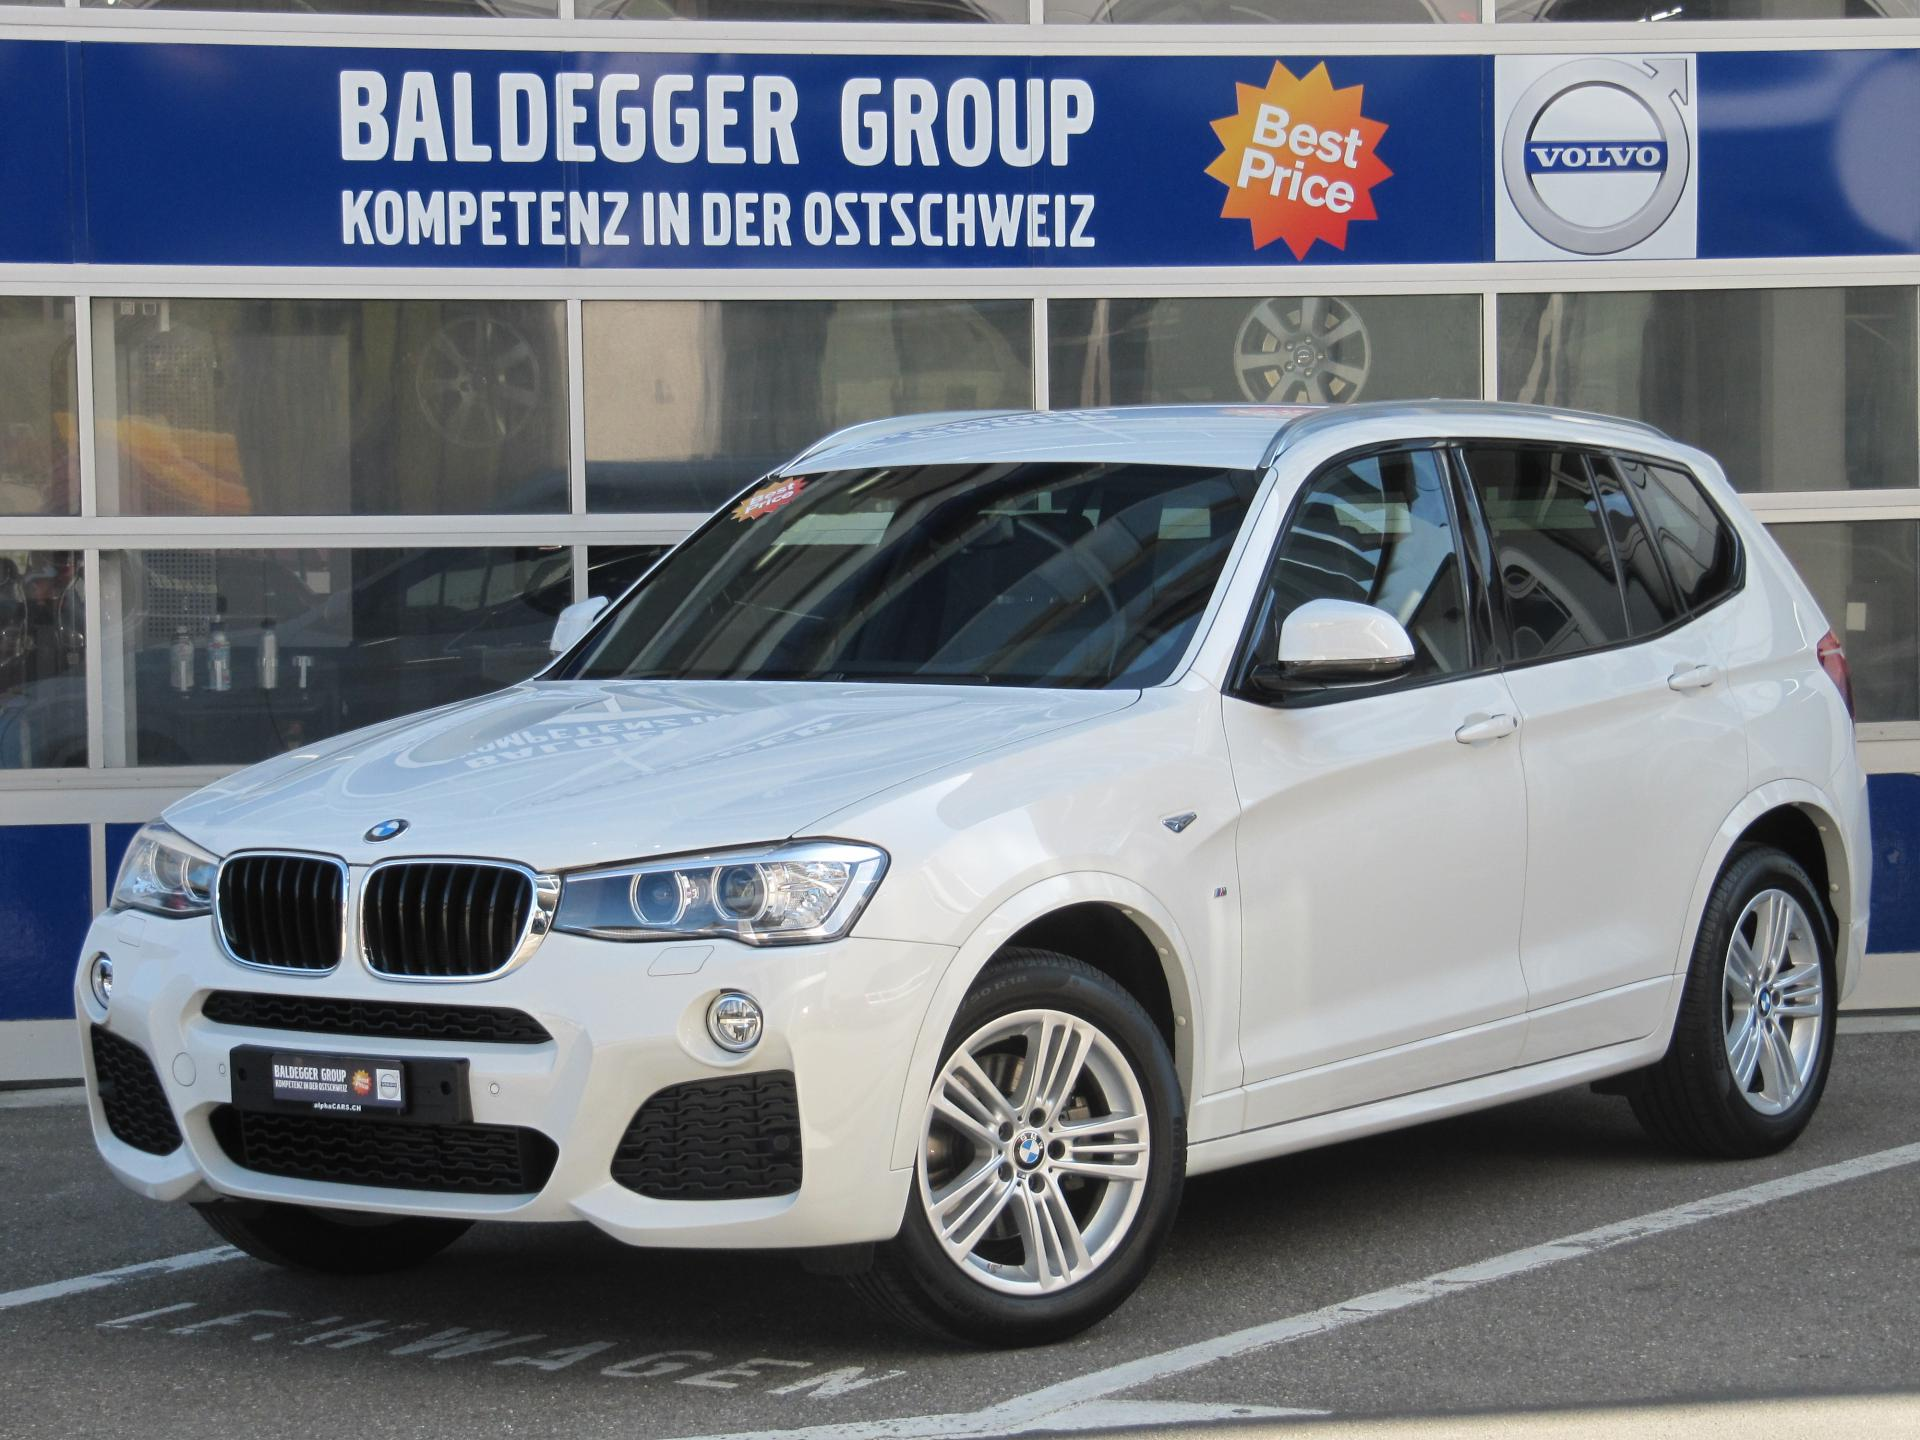 bmw x3 xdrive 20d baldegger automobile ag. Black Bedroom Furniture Sets. Home Design Ideas